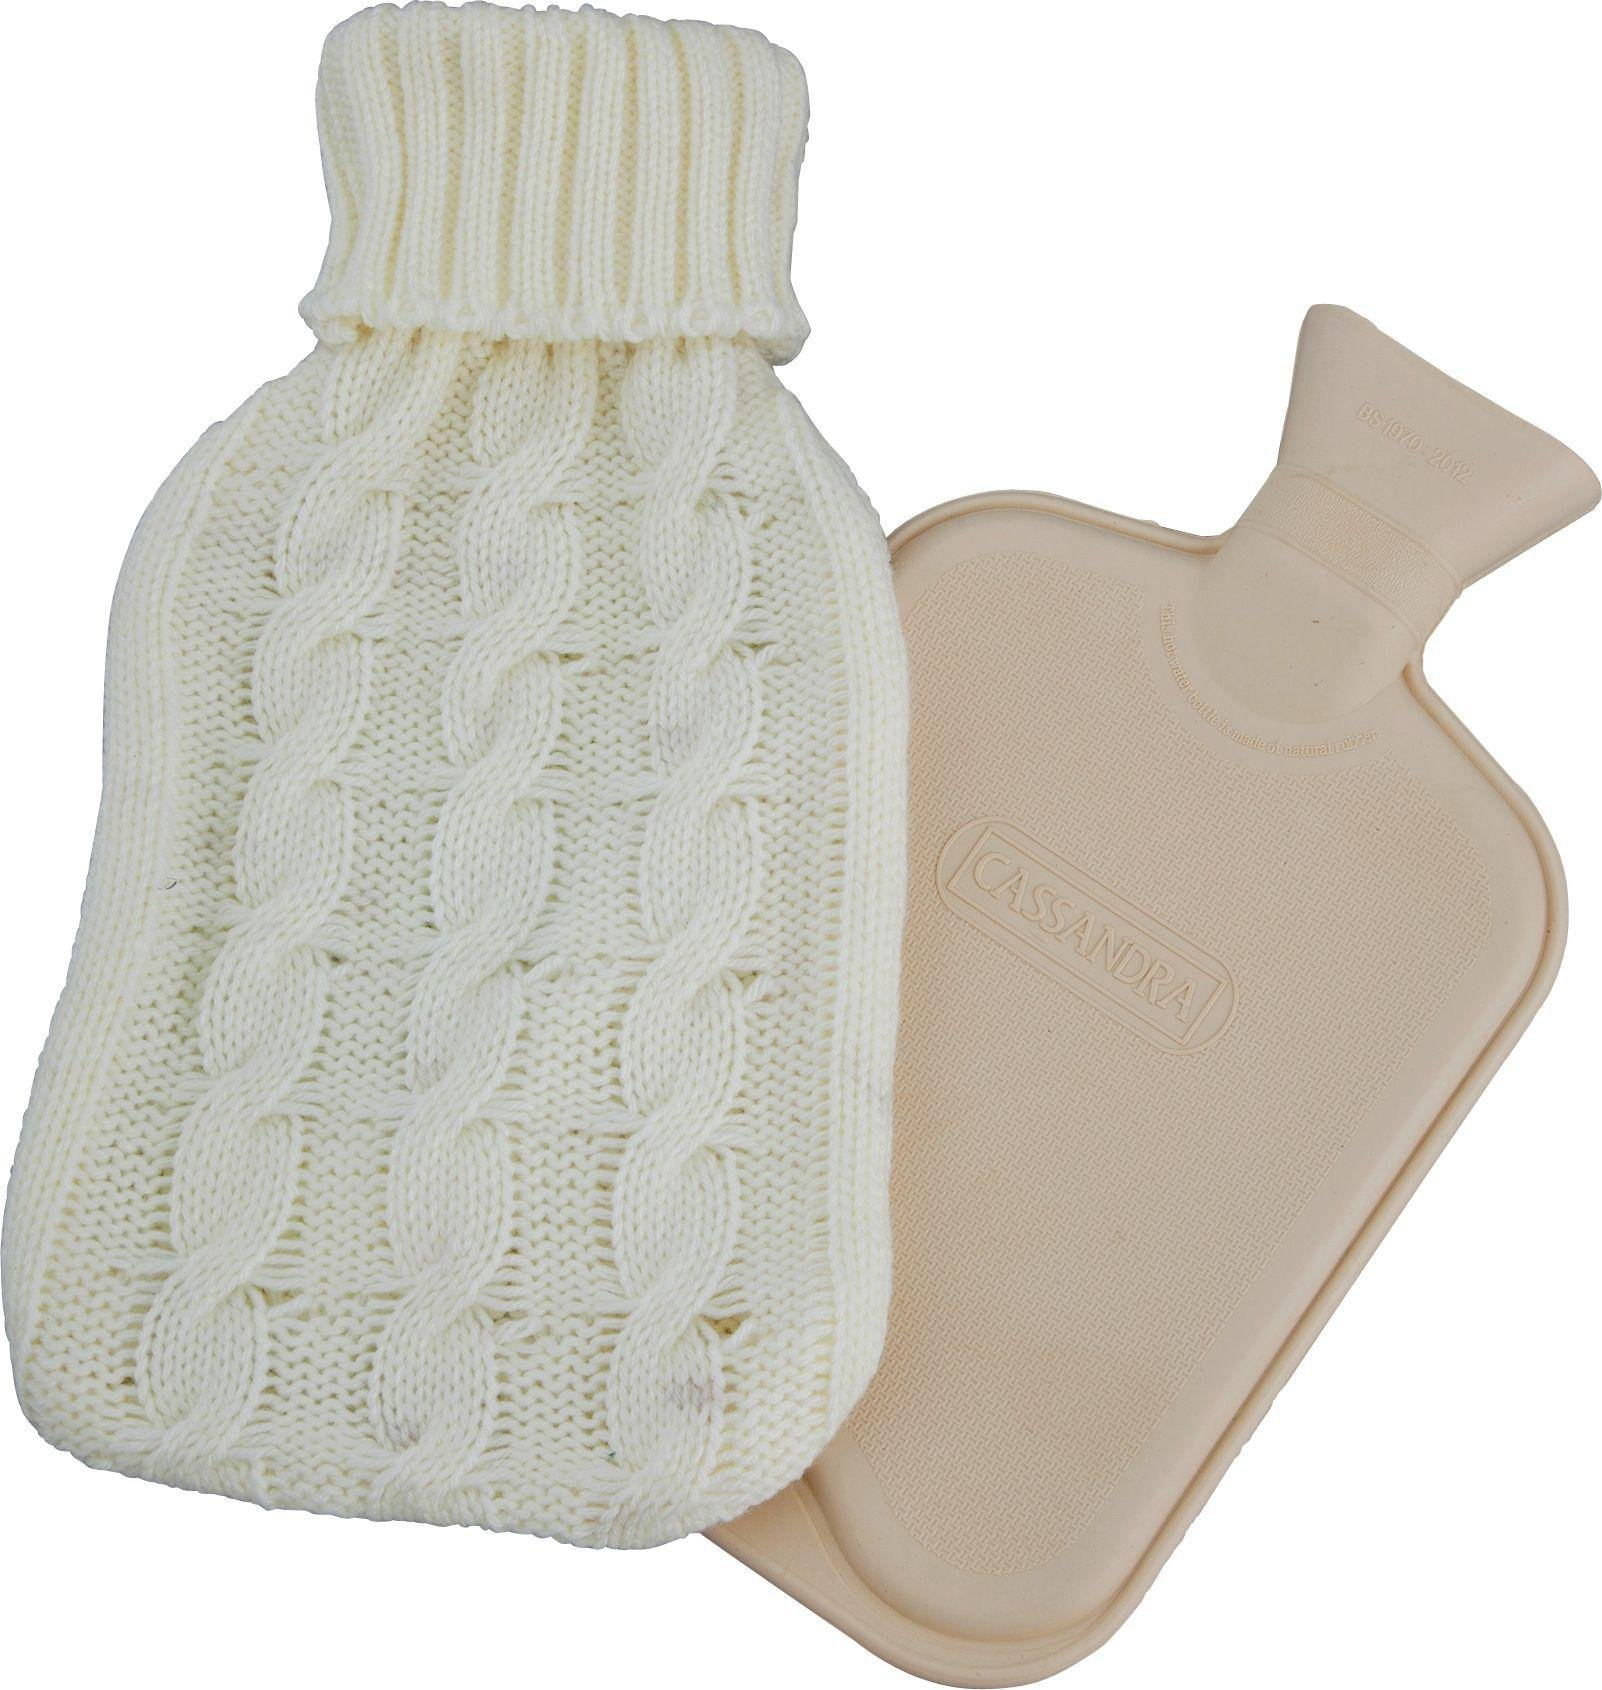 Image of Cassandra - Hot Water Bottle with Chunky Knit Cover